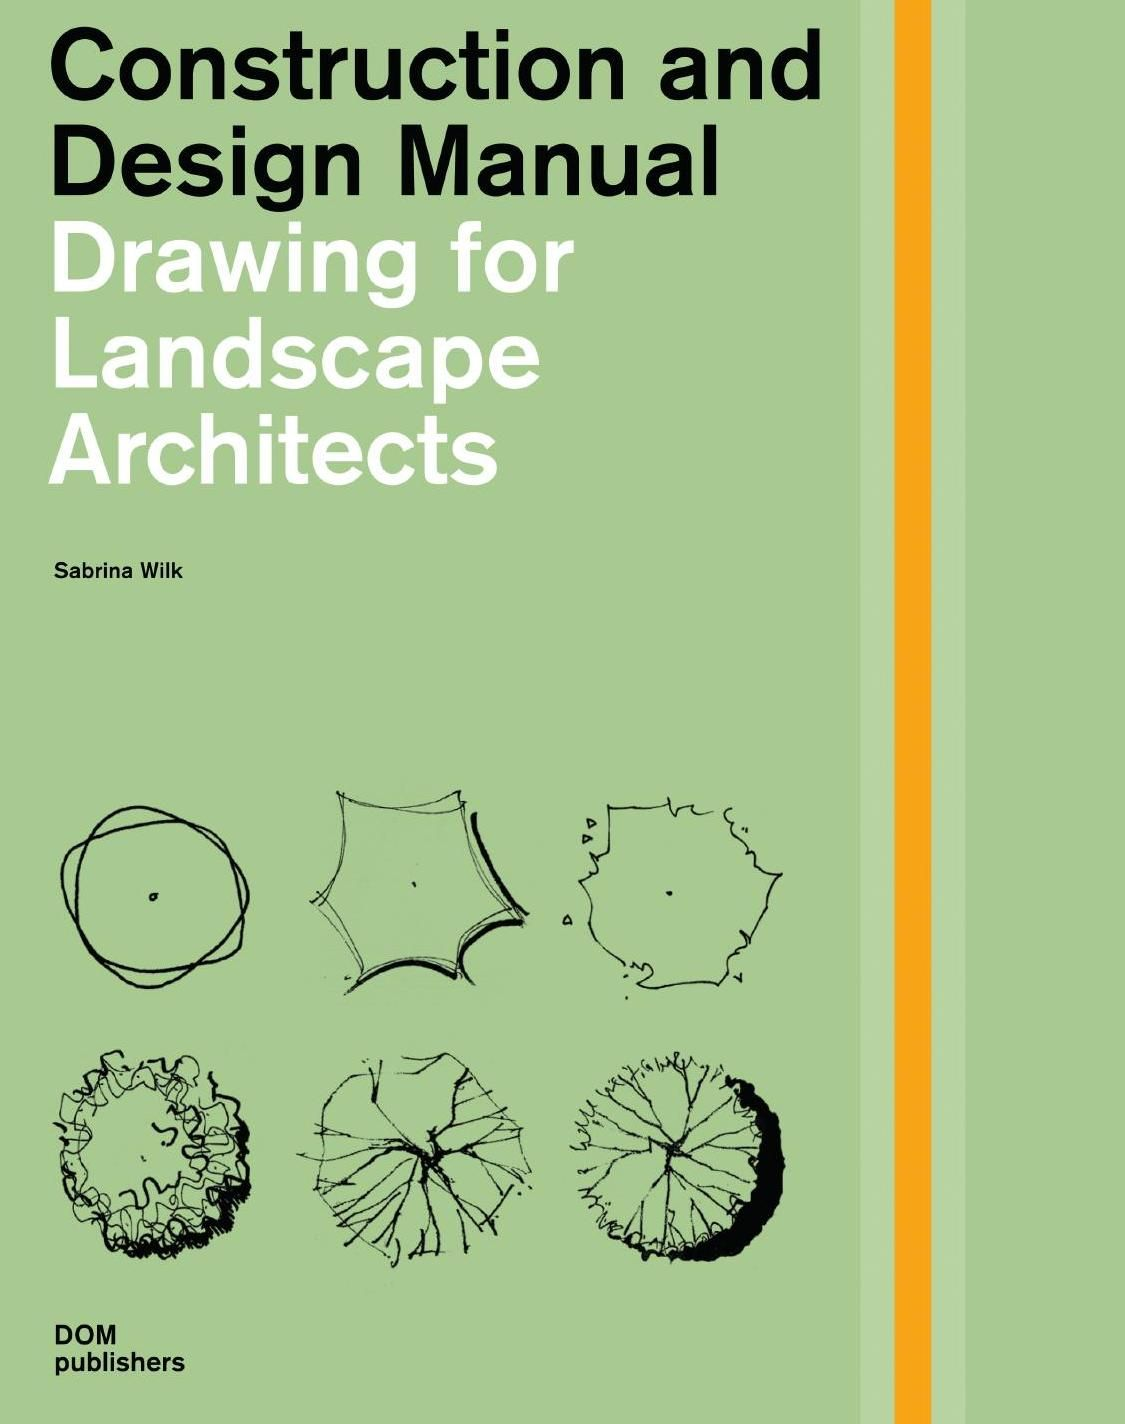 Landscape Architecture Drawing Techniques drawing for landscape architects   architects, landscaping and